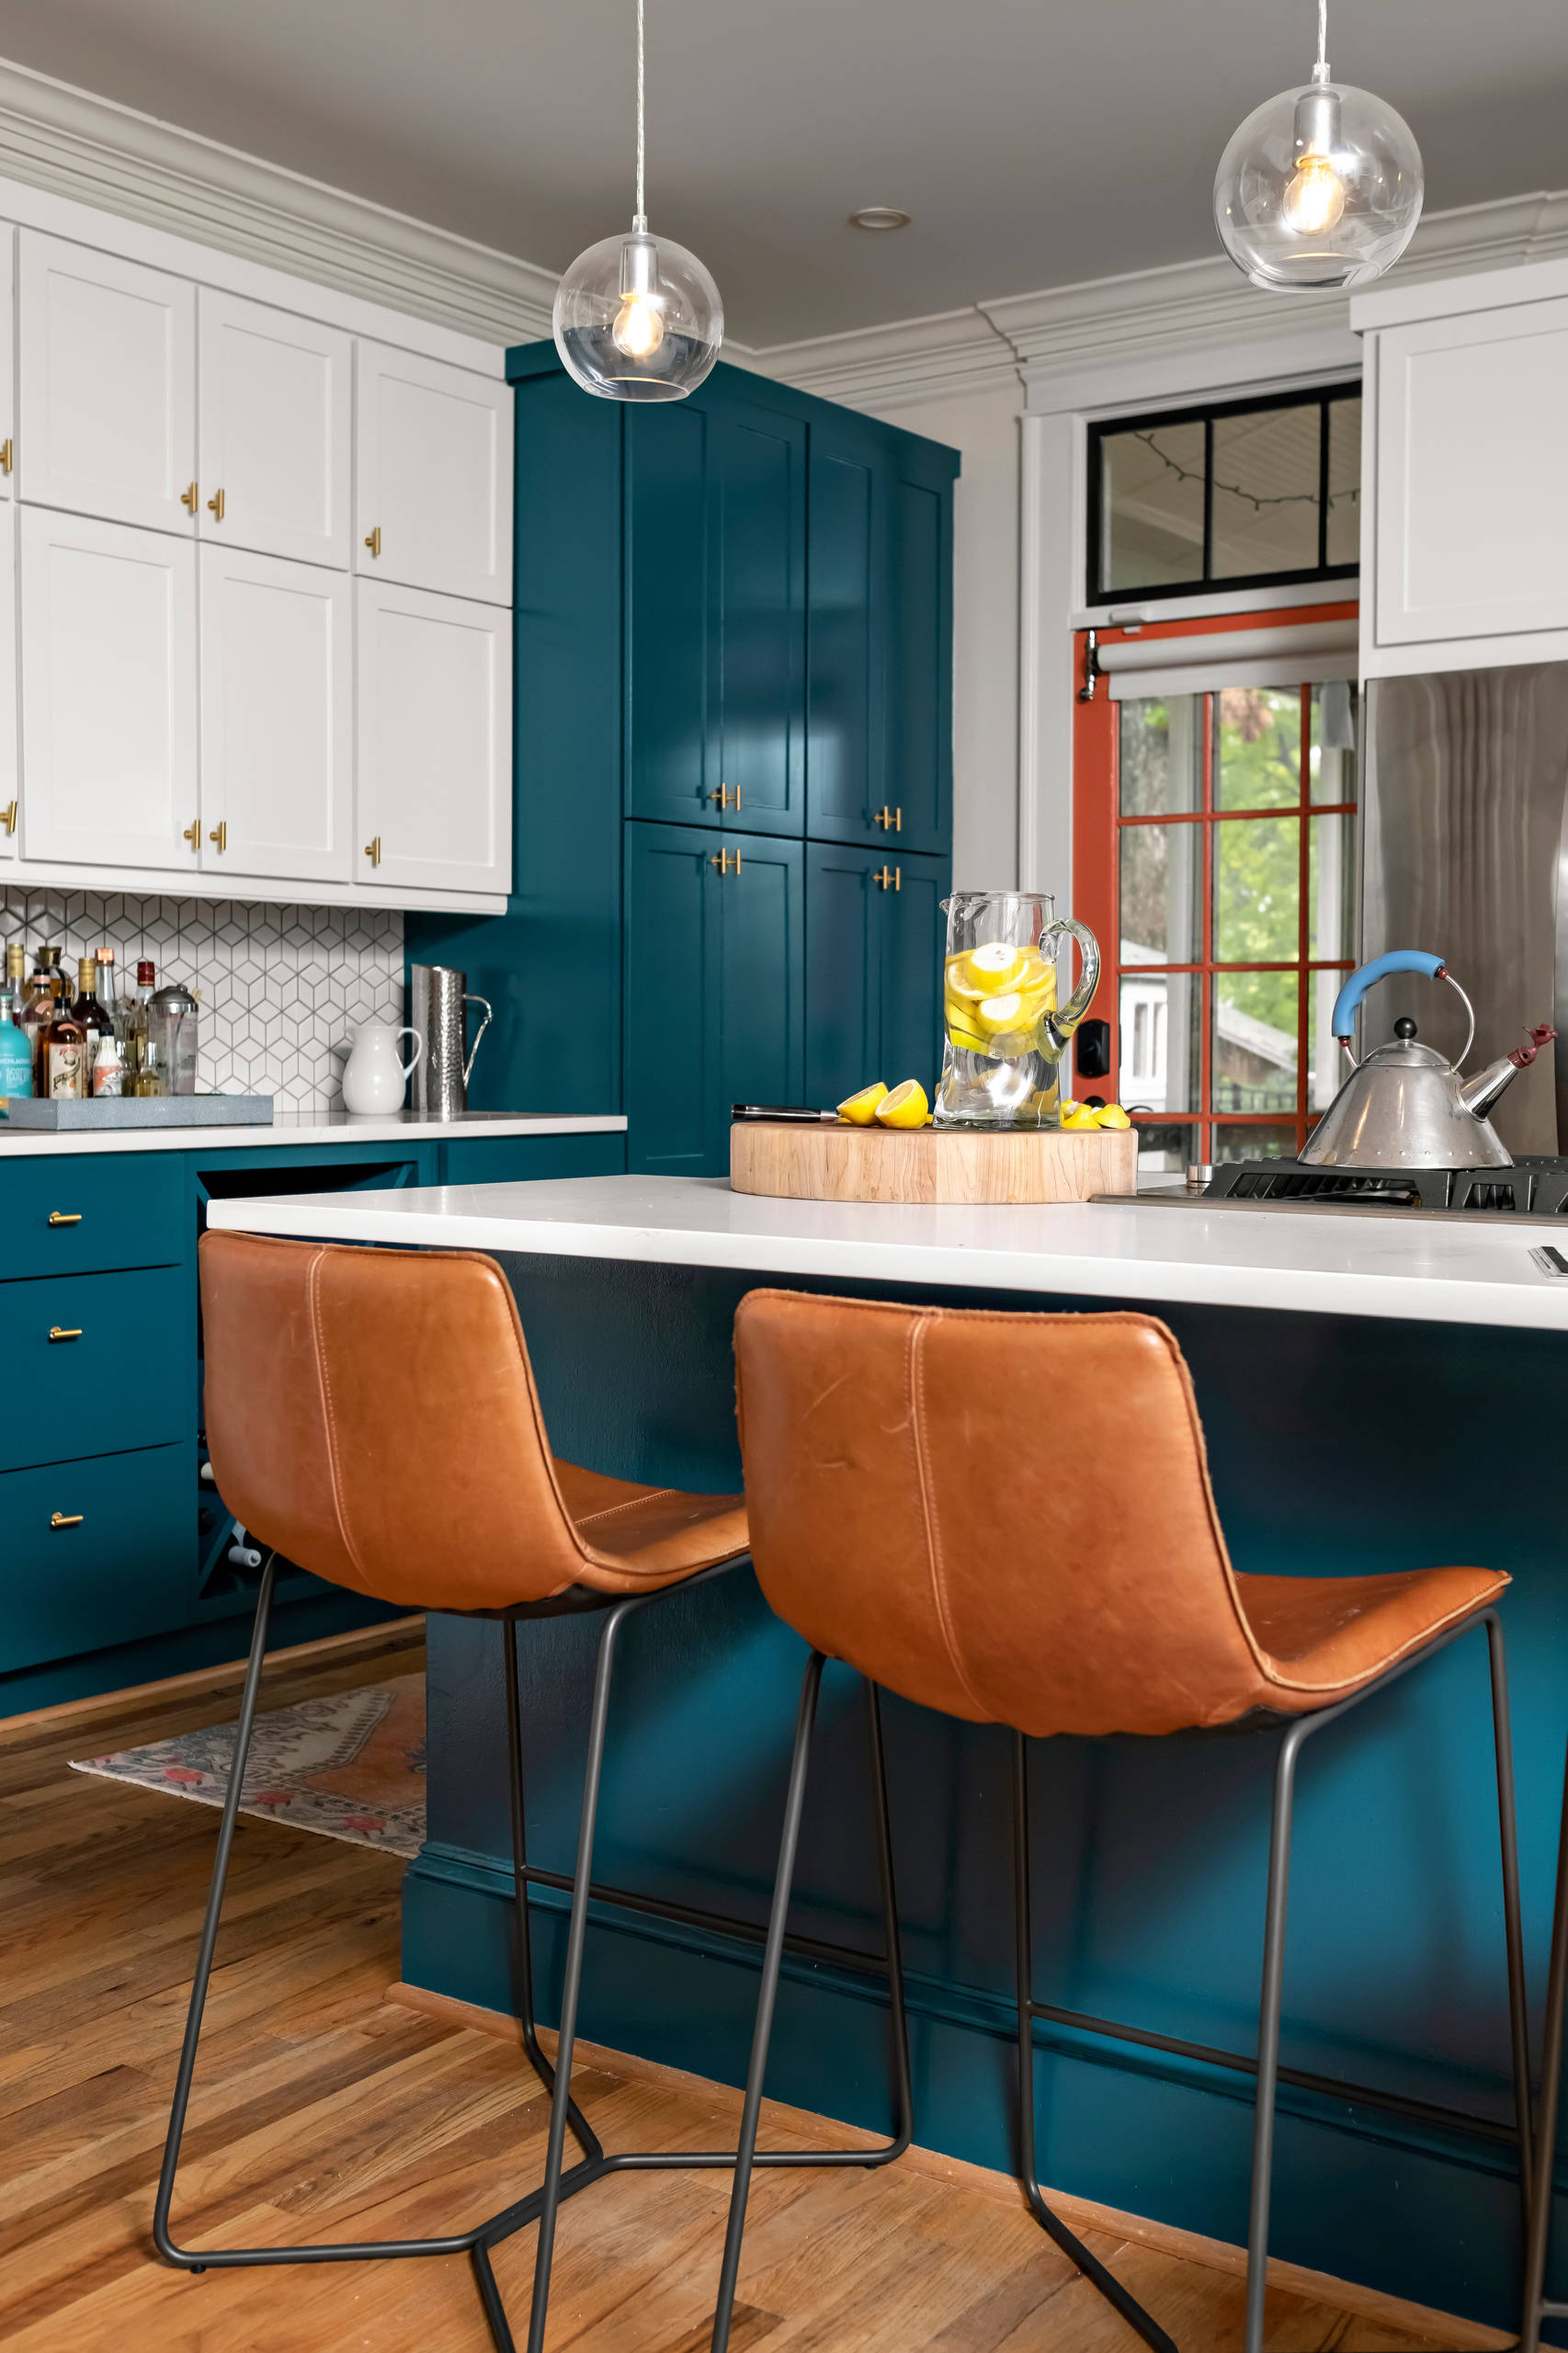 75 Beautiful Kitchen With Turquoise Cabinets Pictures Ideas April 2021 Houzz